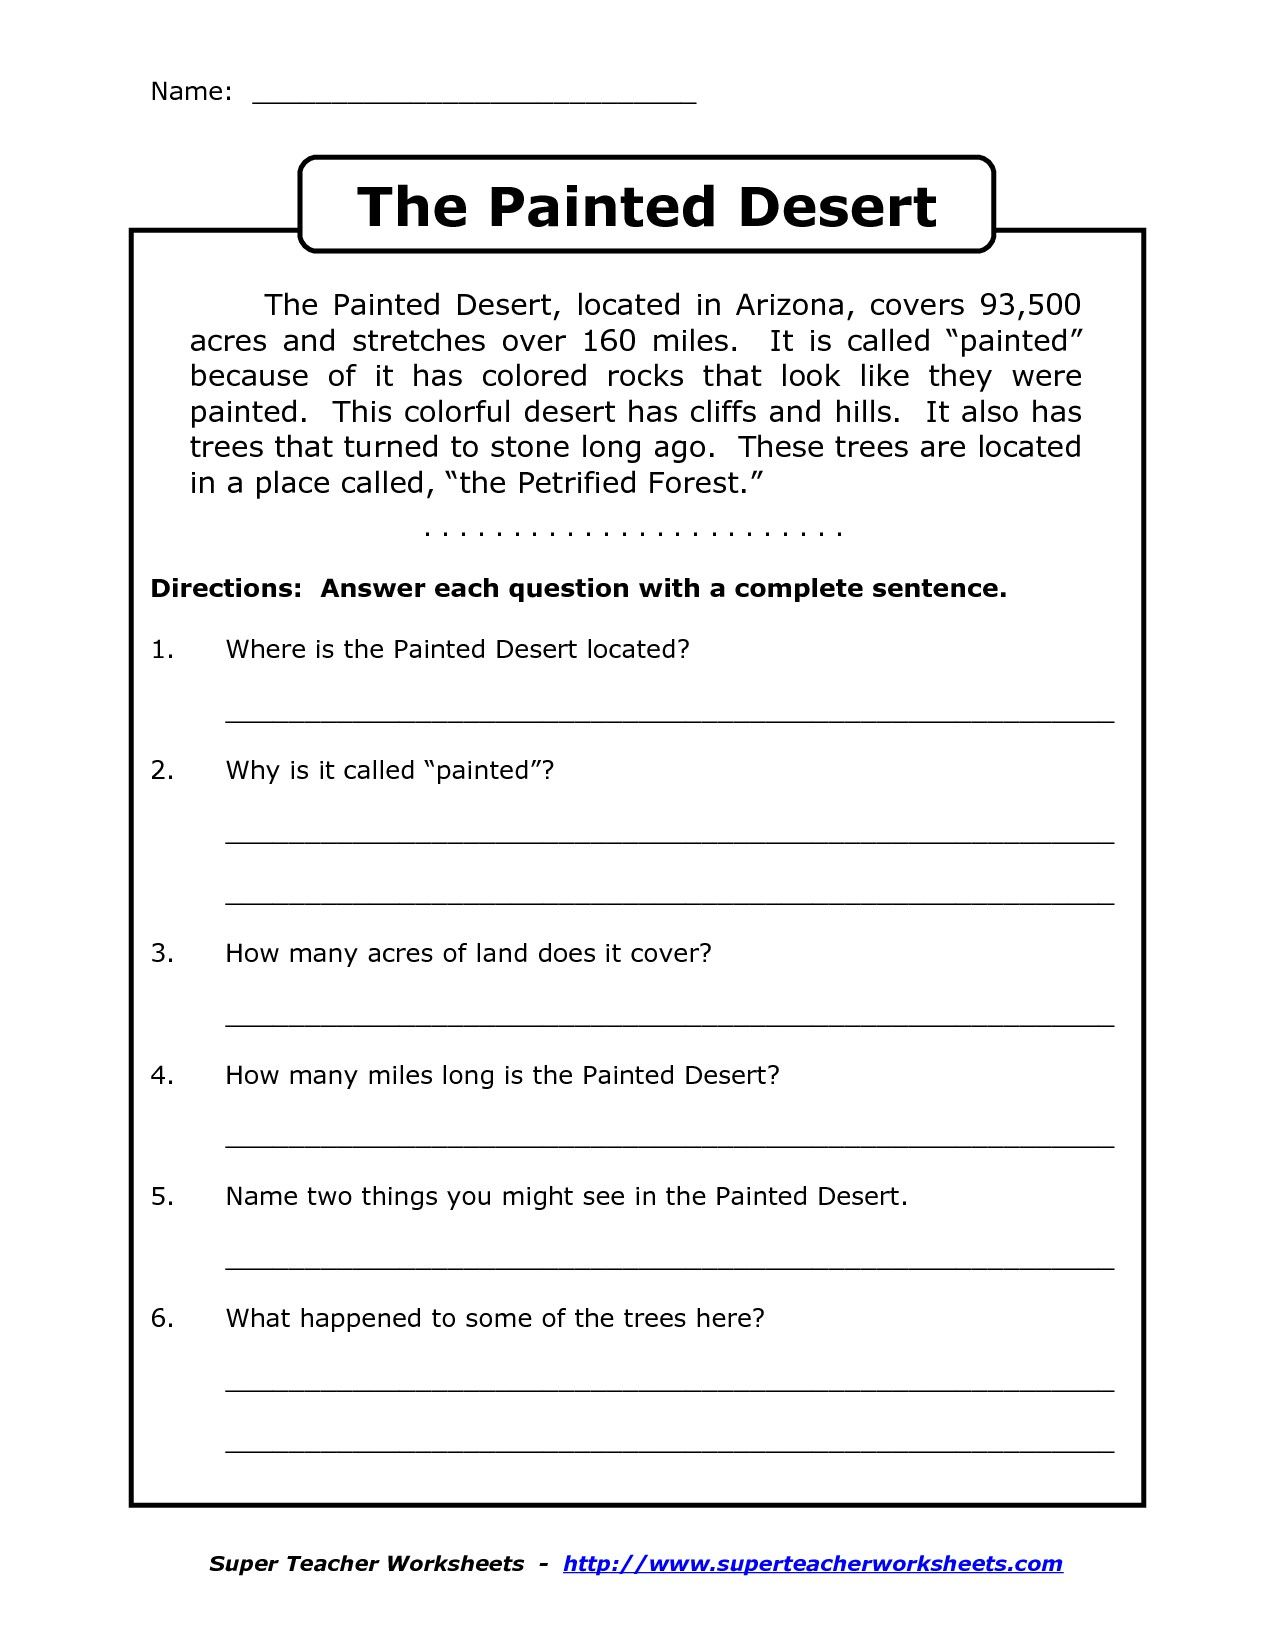 Worksheets Reading Printable Worksheets grade 2 reading comprehension worksheets free coffemix worksheet coffemix